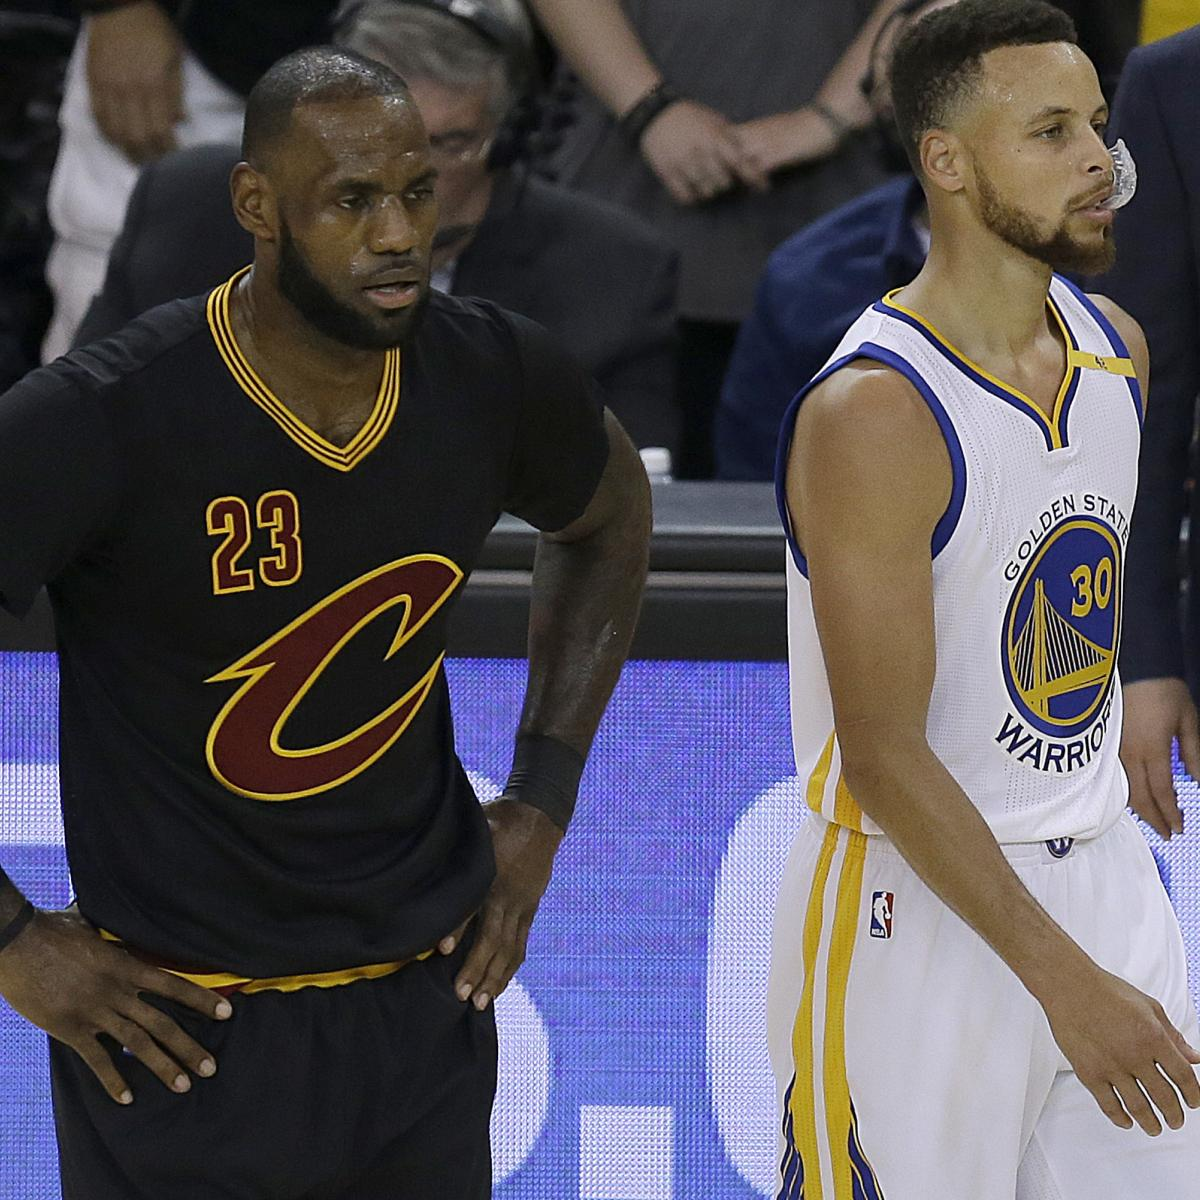 LeBron James Named Rookies' Favorite NBA Player; Stephen Curry Receives No Votes